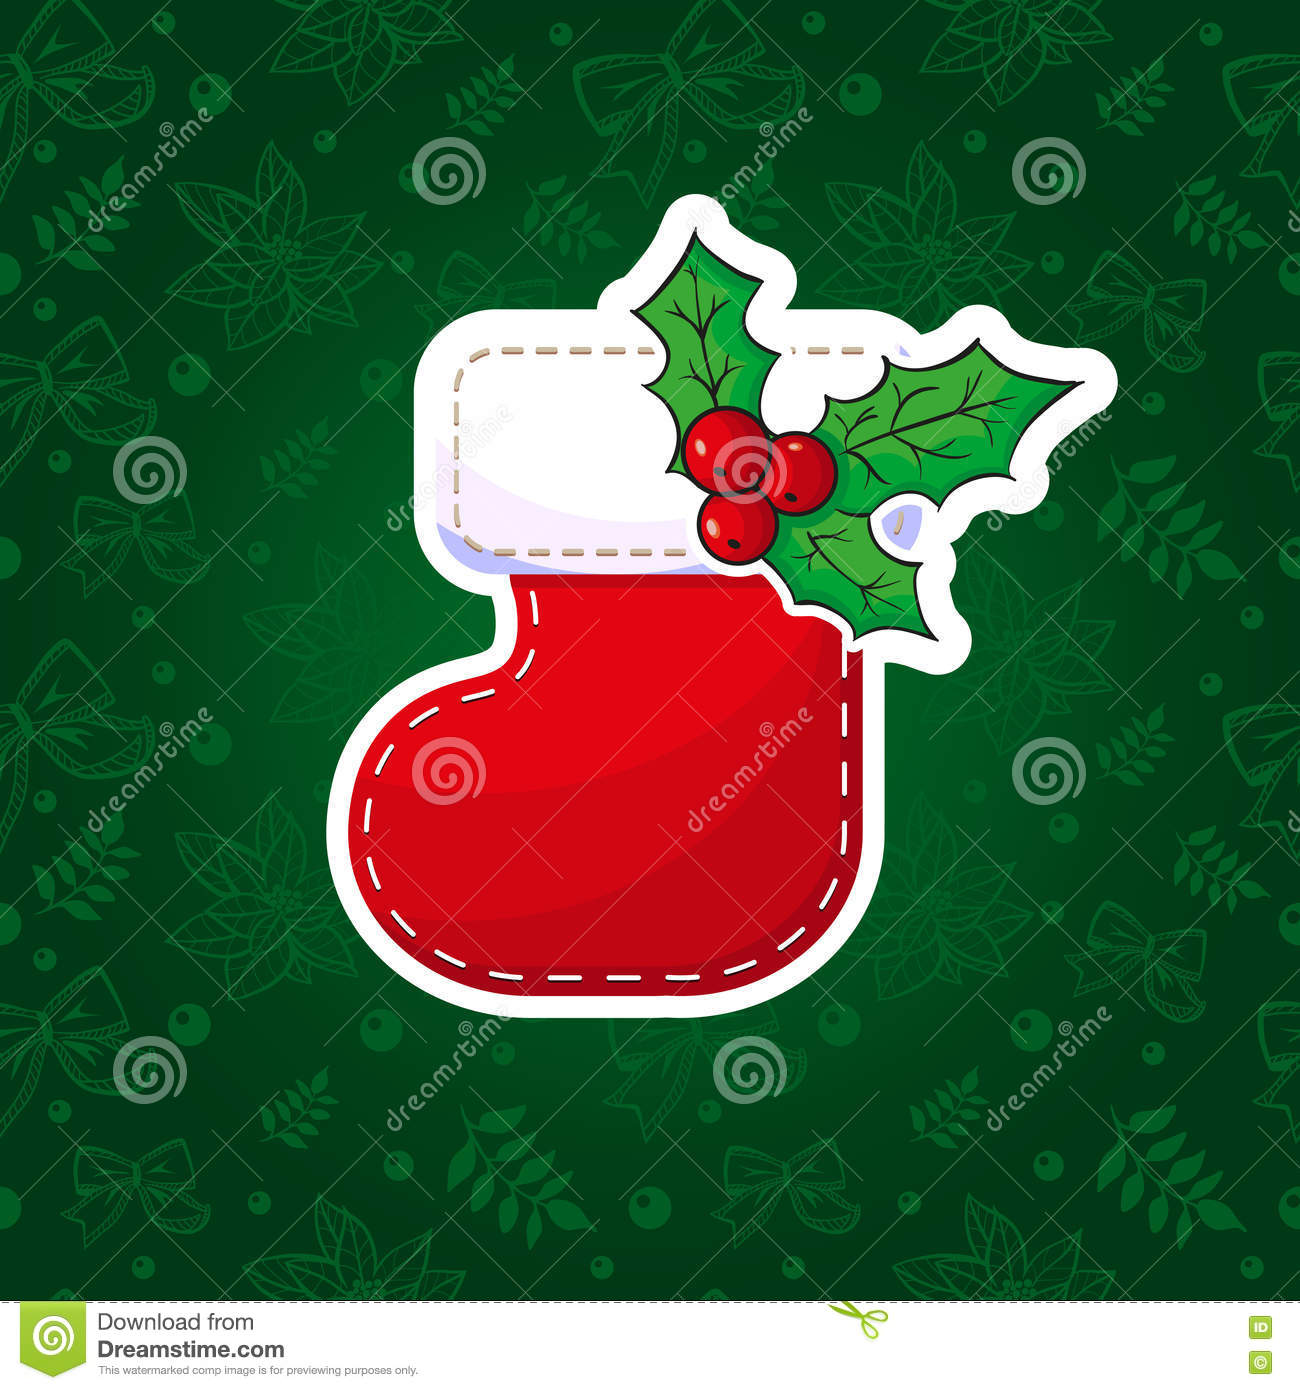 merry christmas or happy new year card template with red sock and poinsettia star